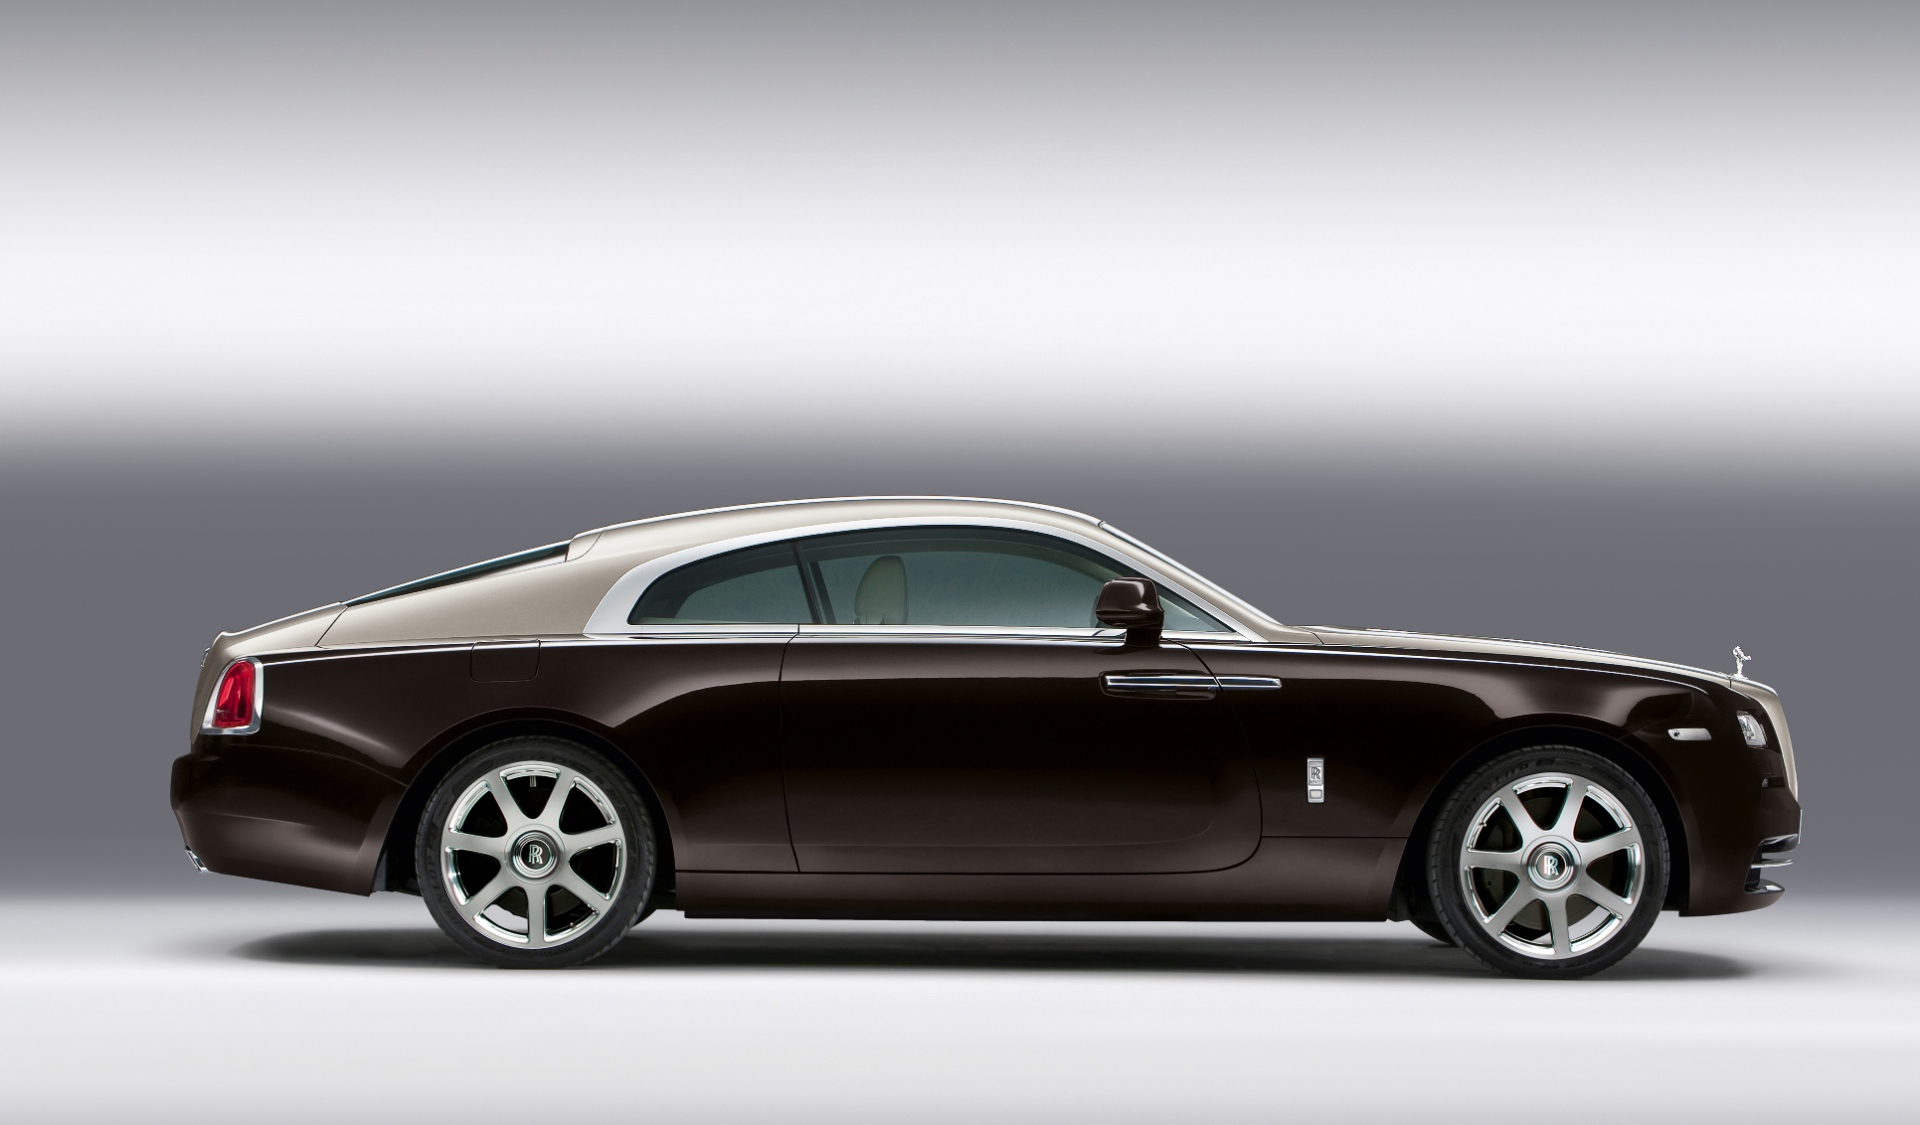 rolls royce wraith specs 2013 2014 2015 2016 2017 2018 autoevolution. Black Bedroom Furniture Sets. Home Design Ideas